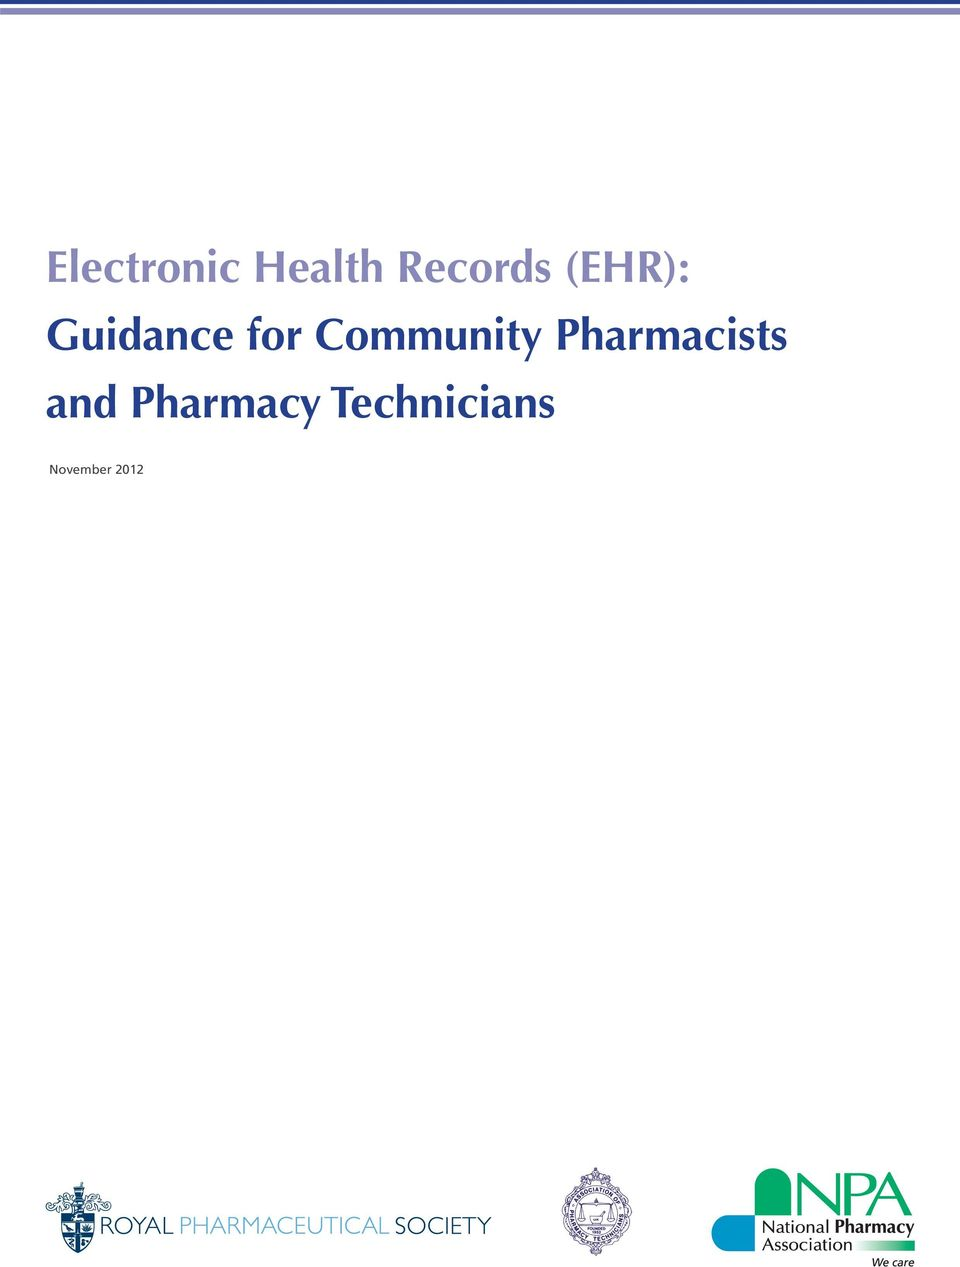 Community Pharmacists and